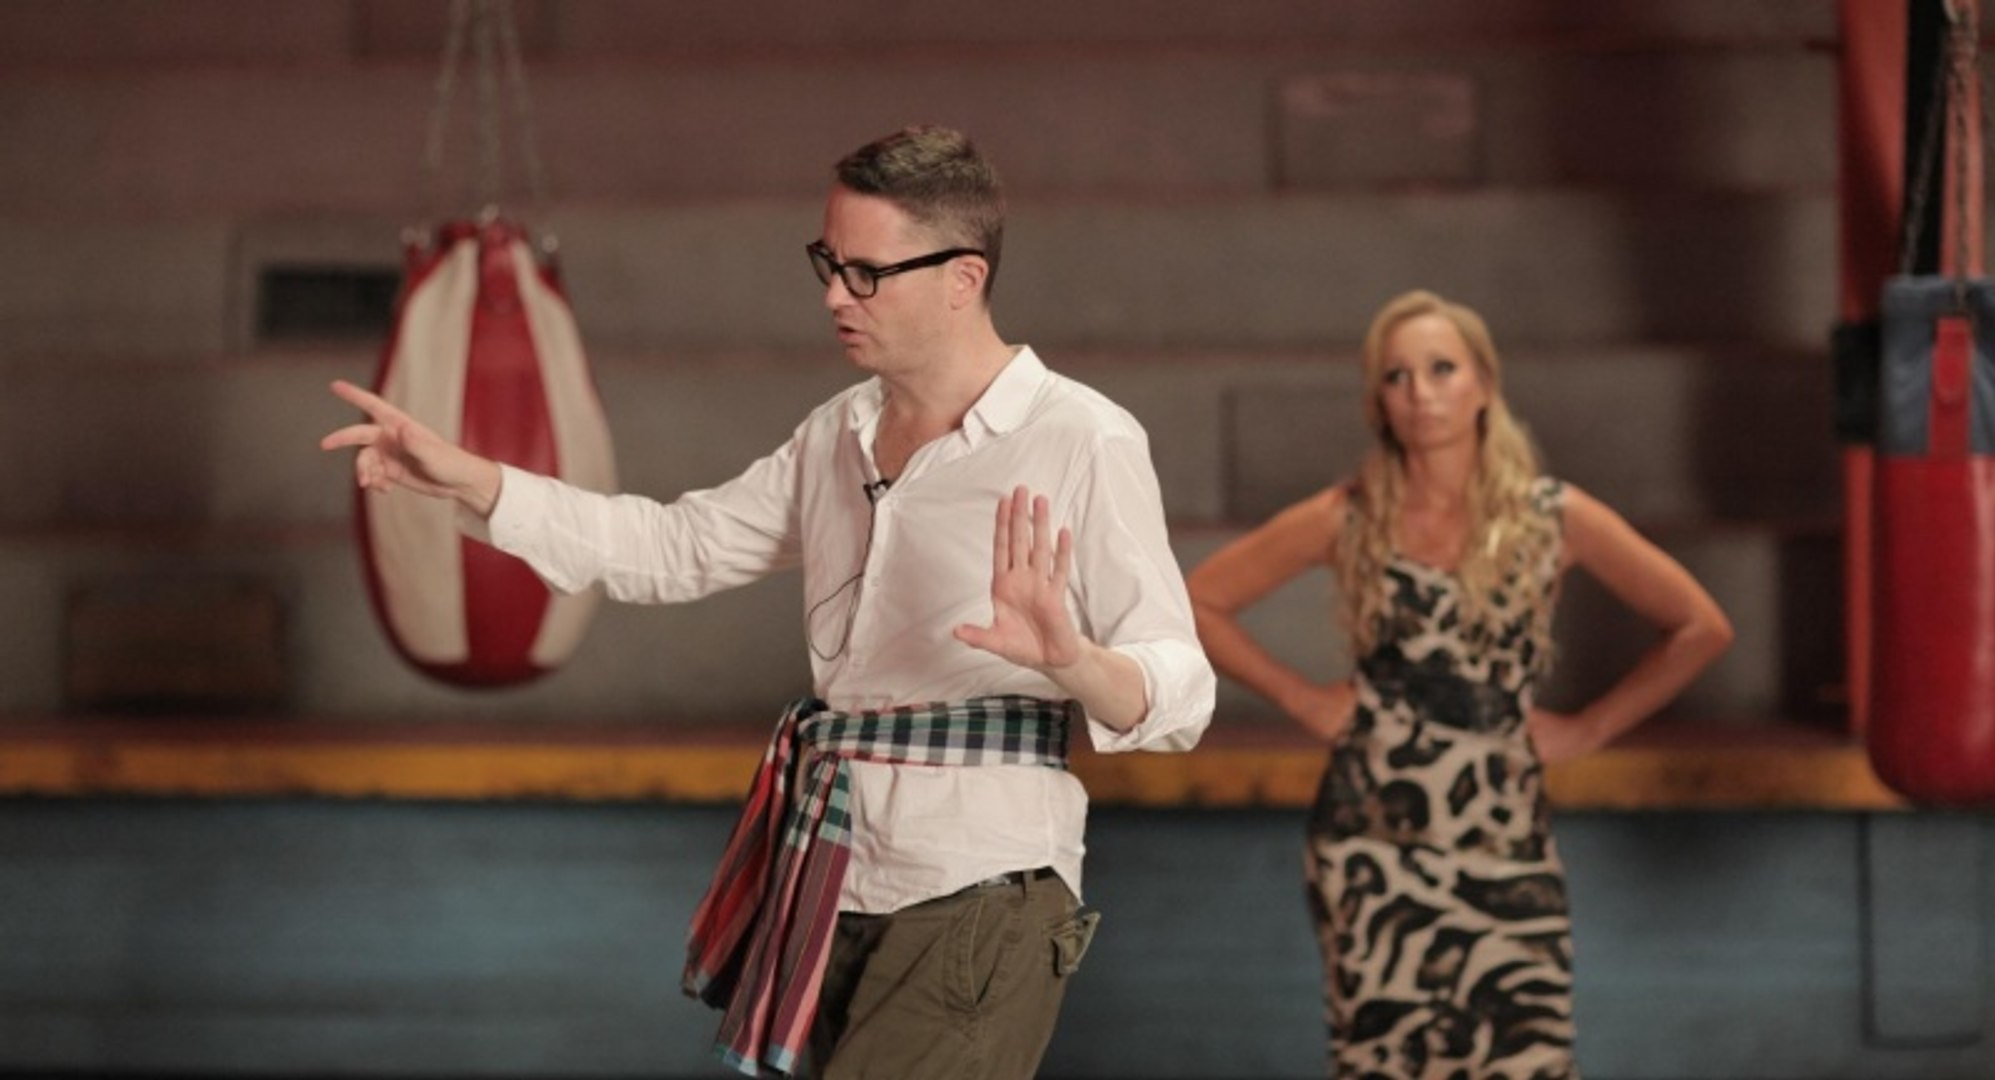 Watch My Life Directed by Nicolas Winding Refn 2015 Full Movie